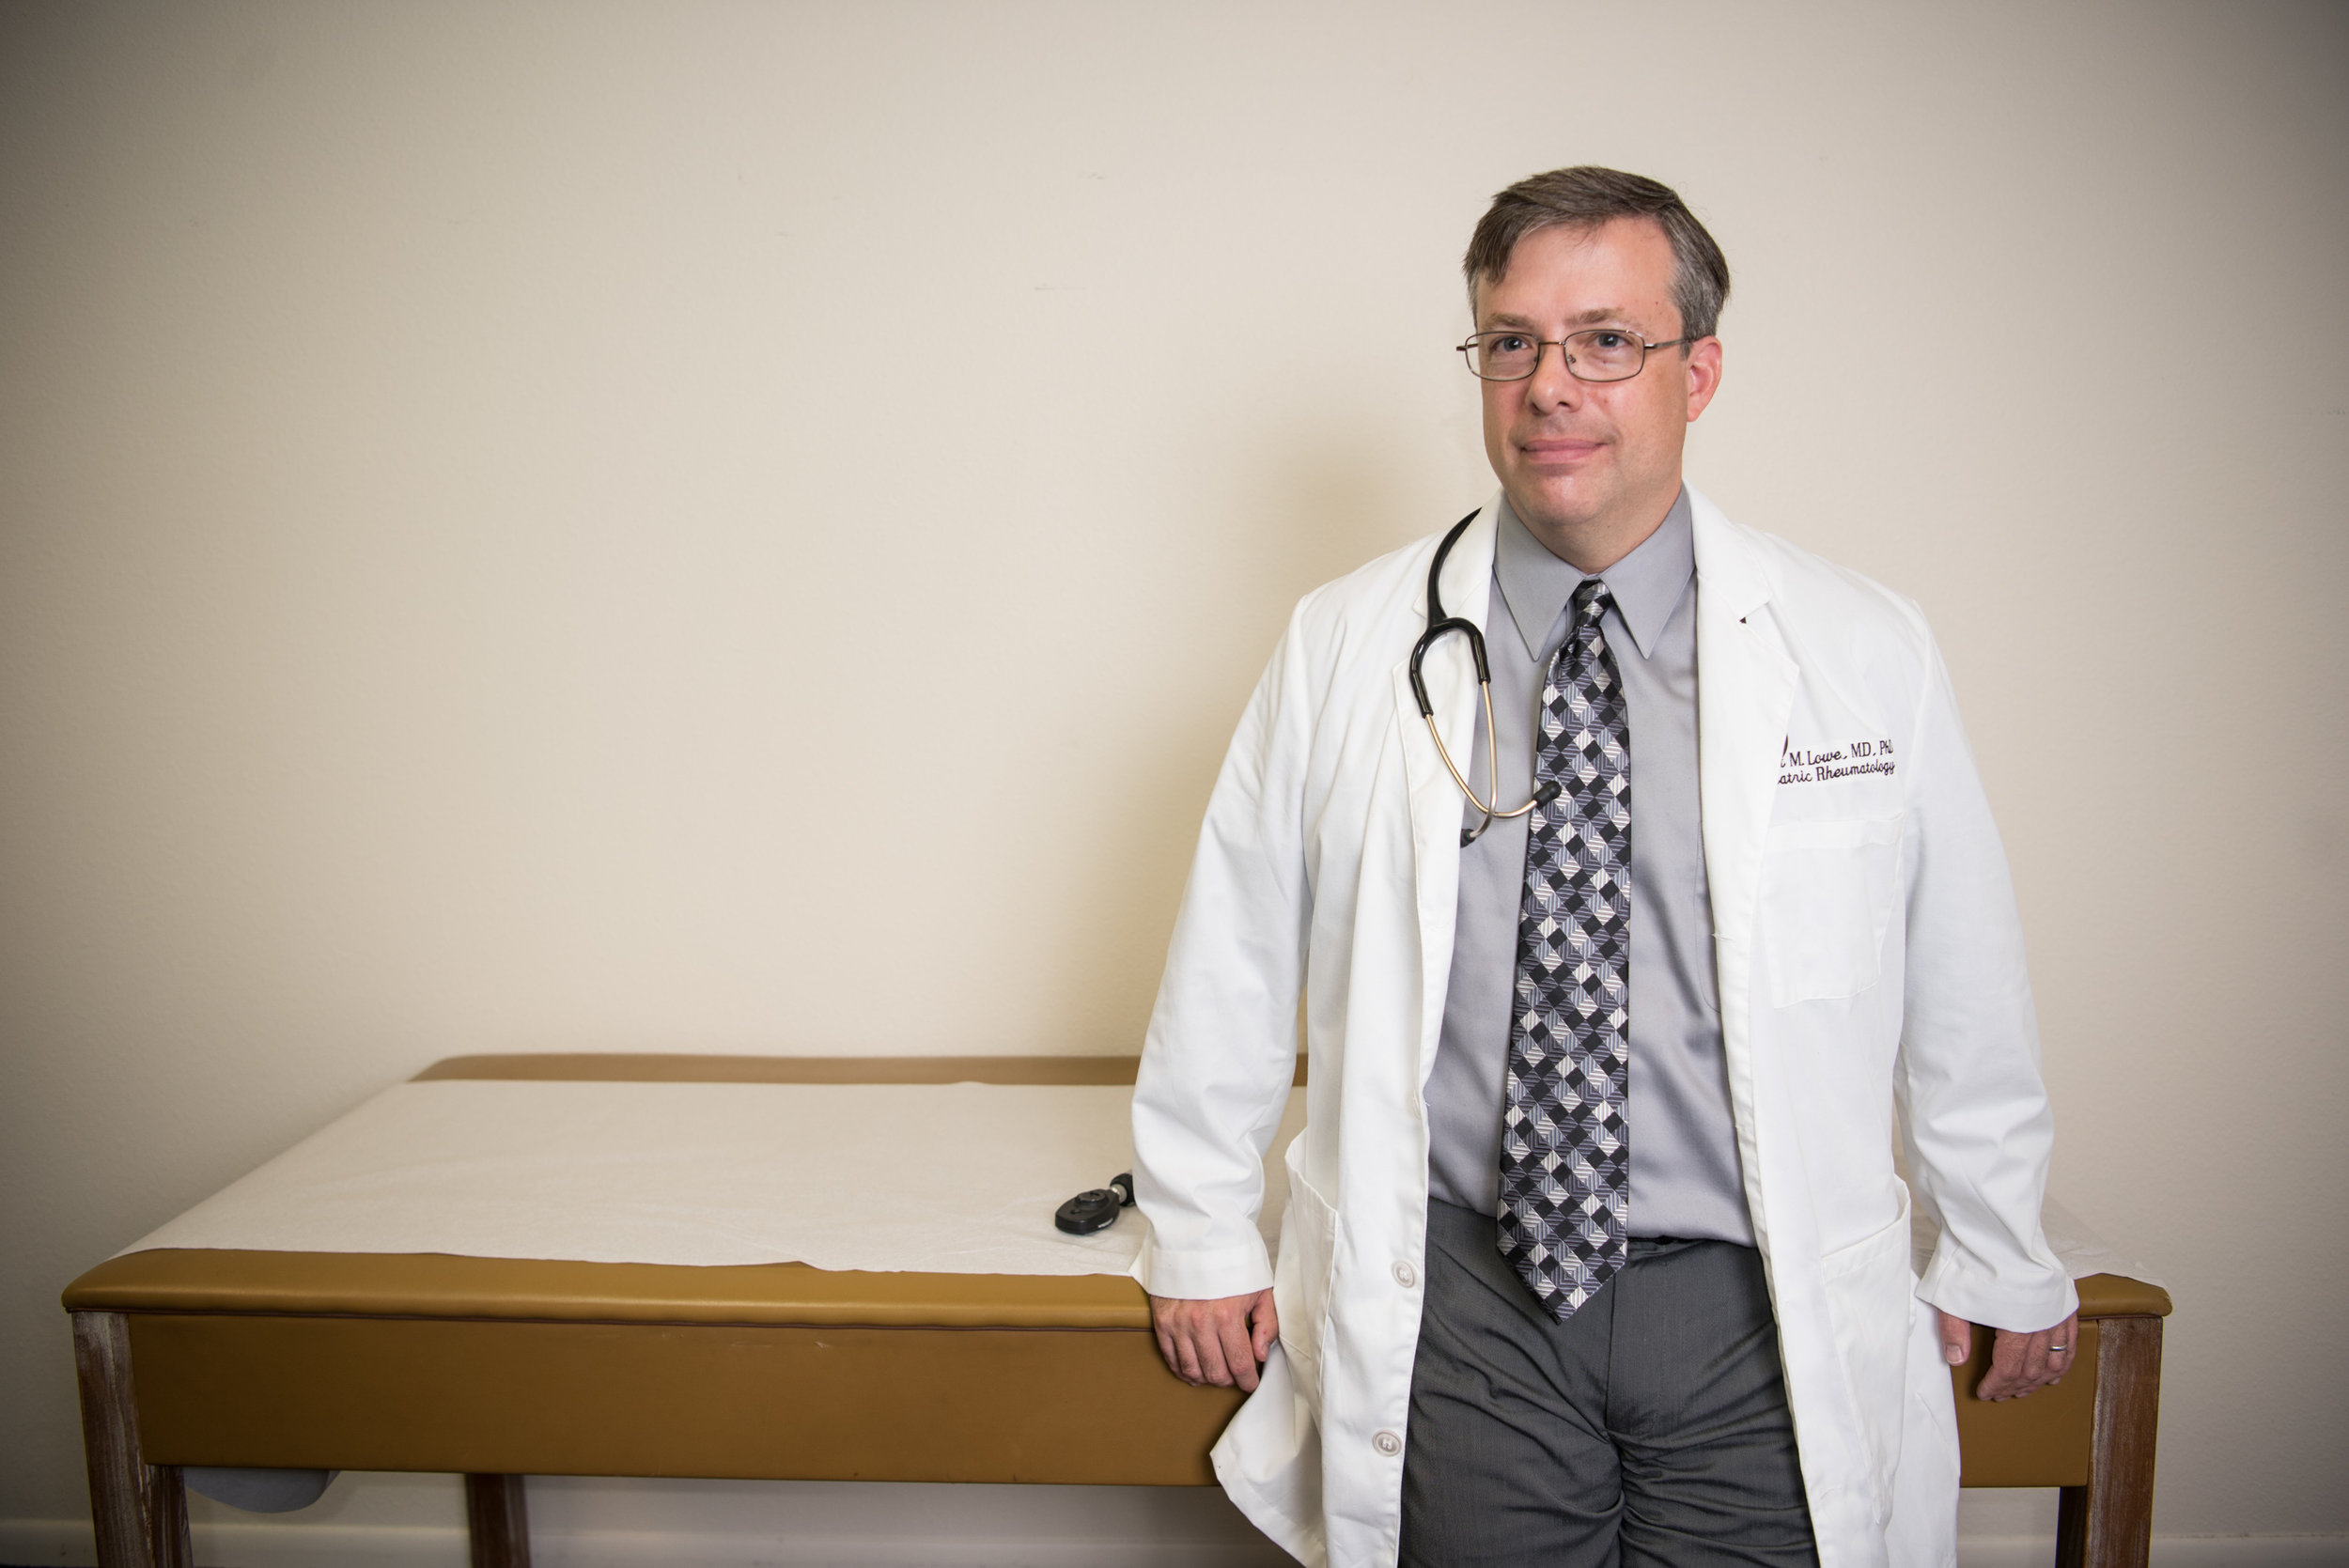 Dr. Robert Lowe, a pediatric arthritis doctor